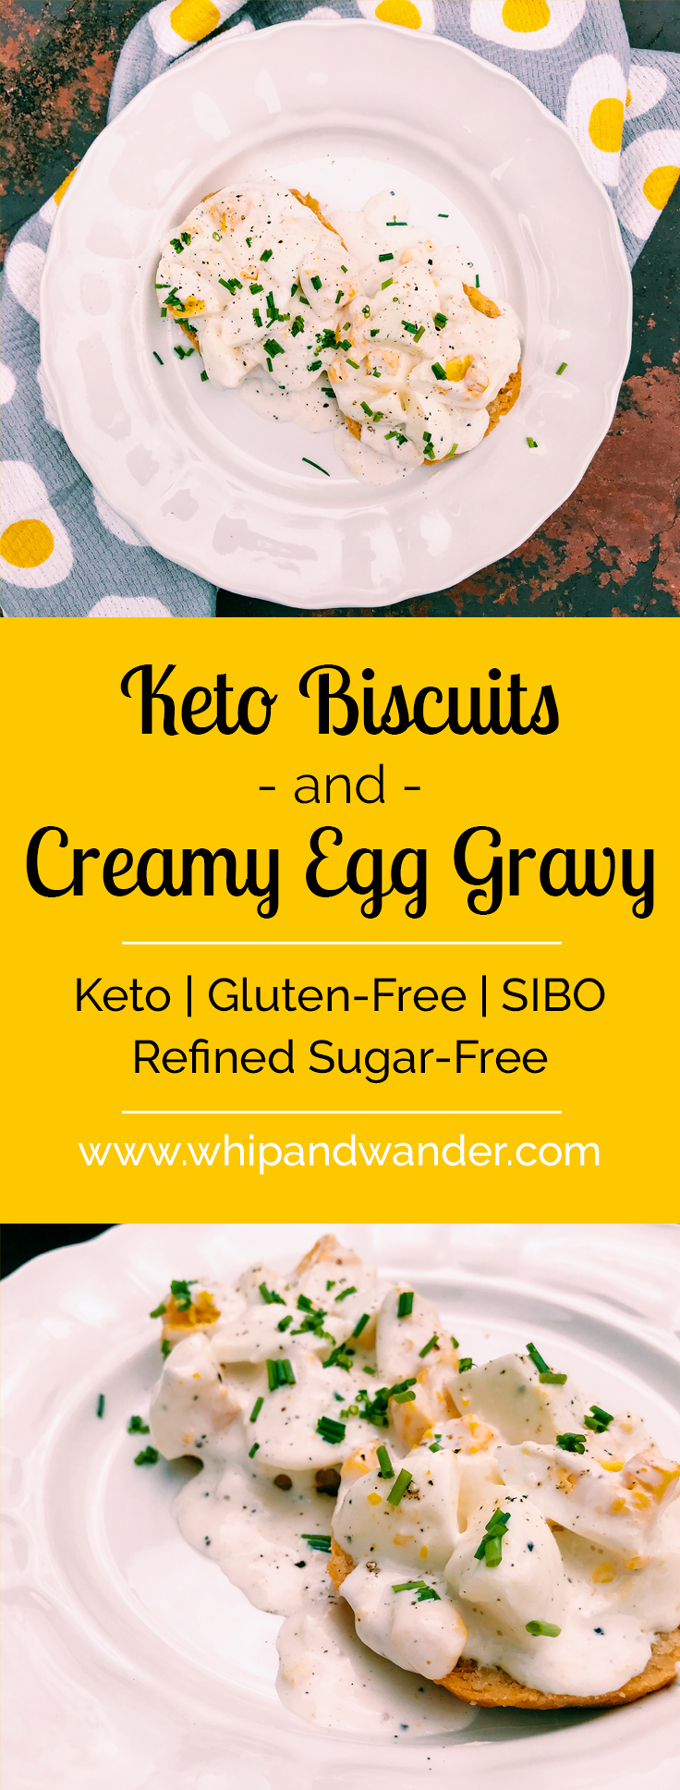 Keto Biscuits and Creamy Egg Gravy